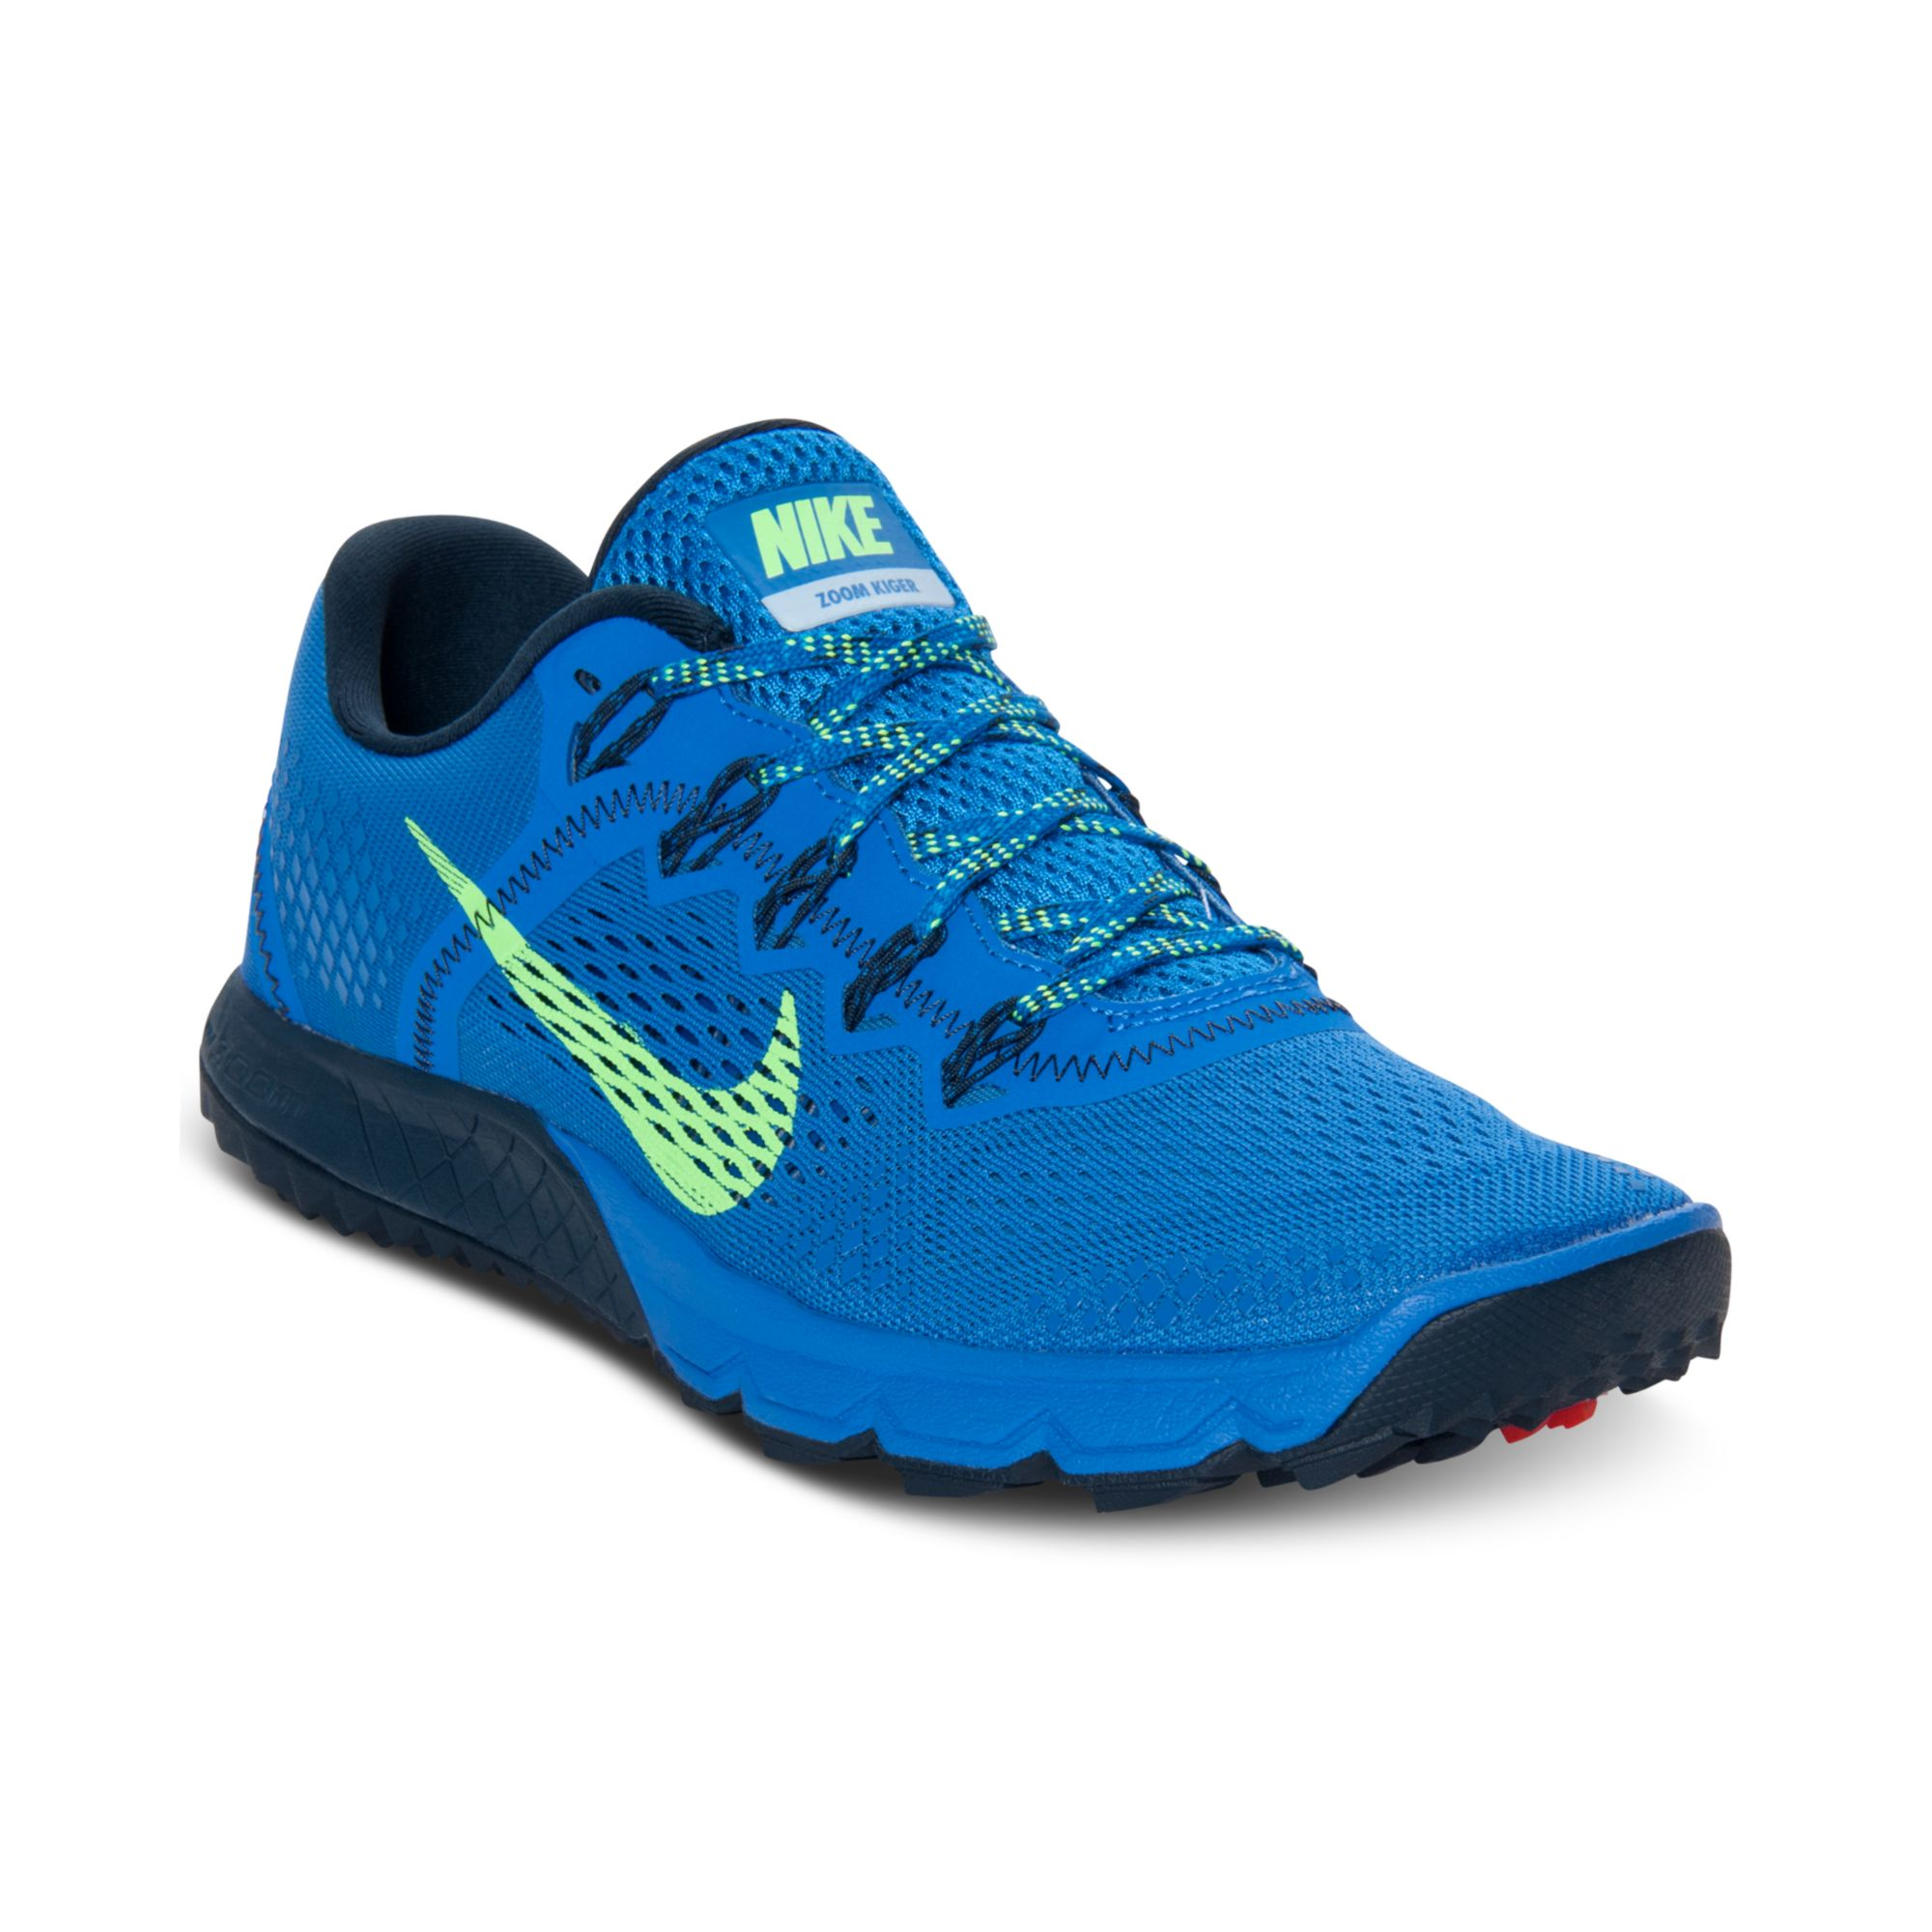 524412b5dffe ... wholesale lyst nike zoom terra kiger running sneakers in blue for men  b9a5d a08e3